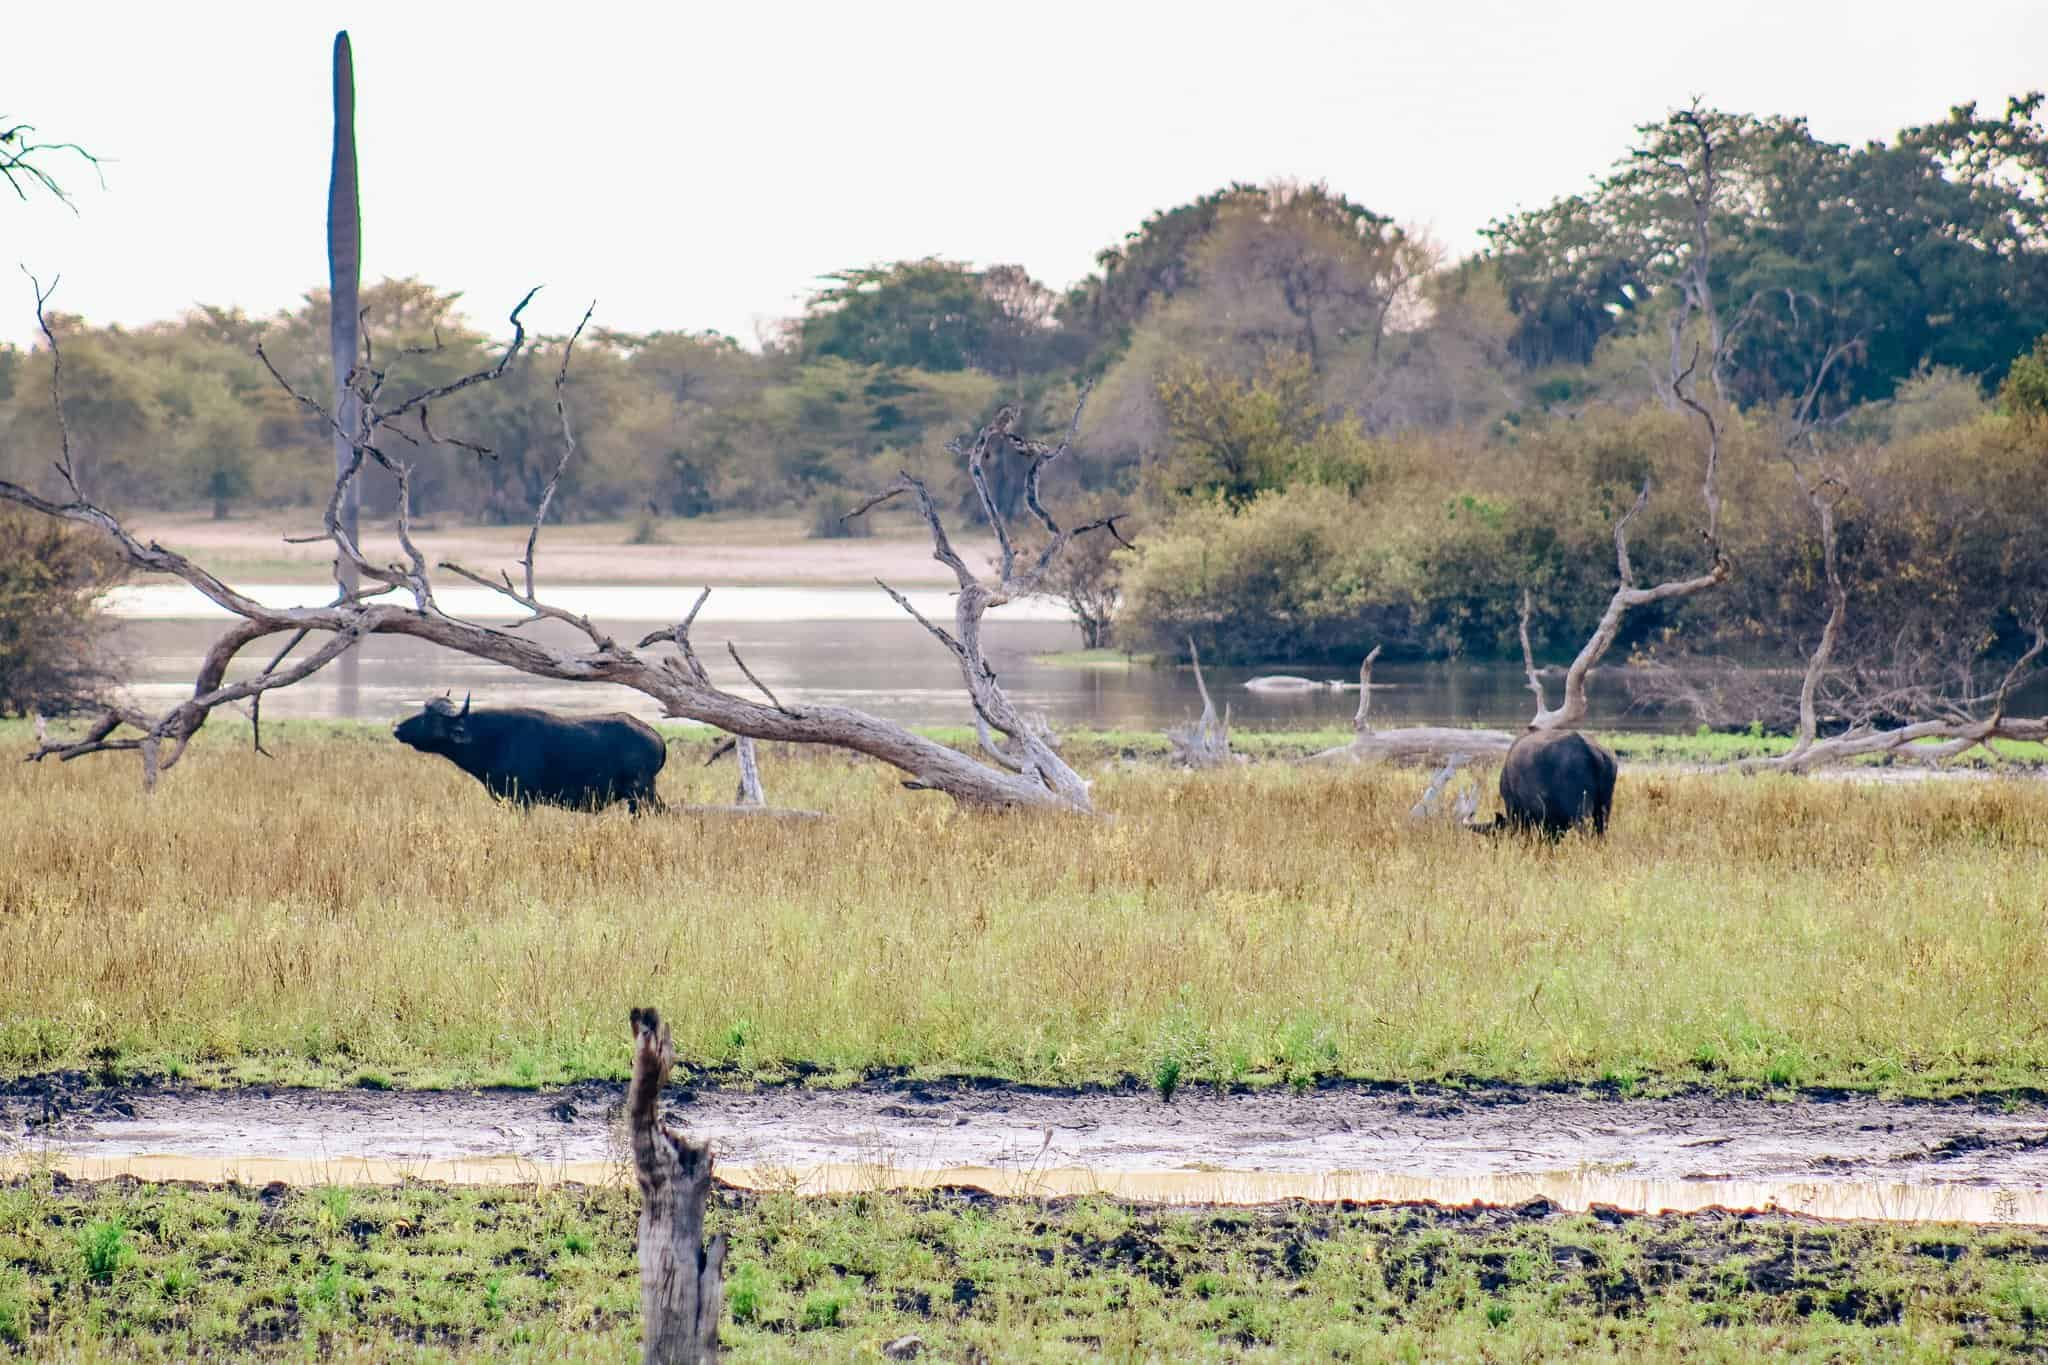 Water Buffalo on African Safari Drive in the Selous Game Reserve